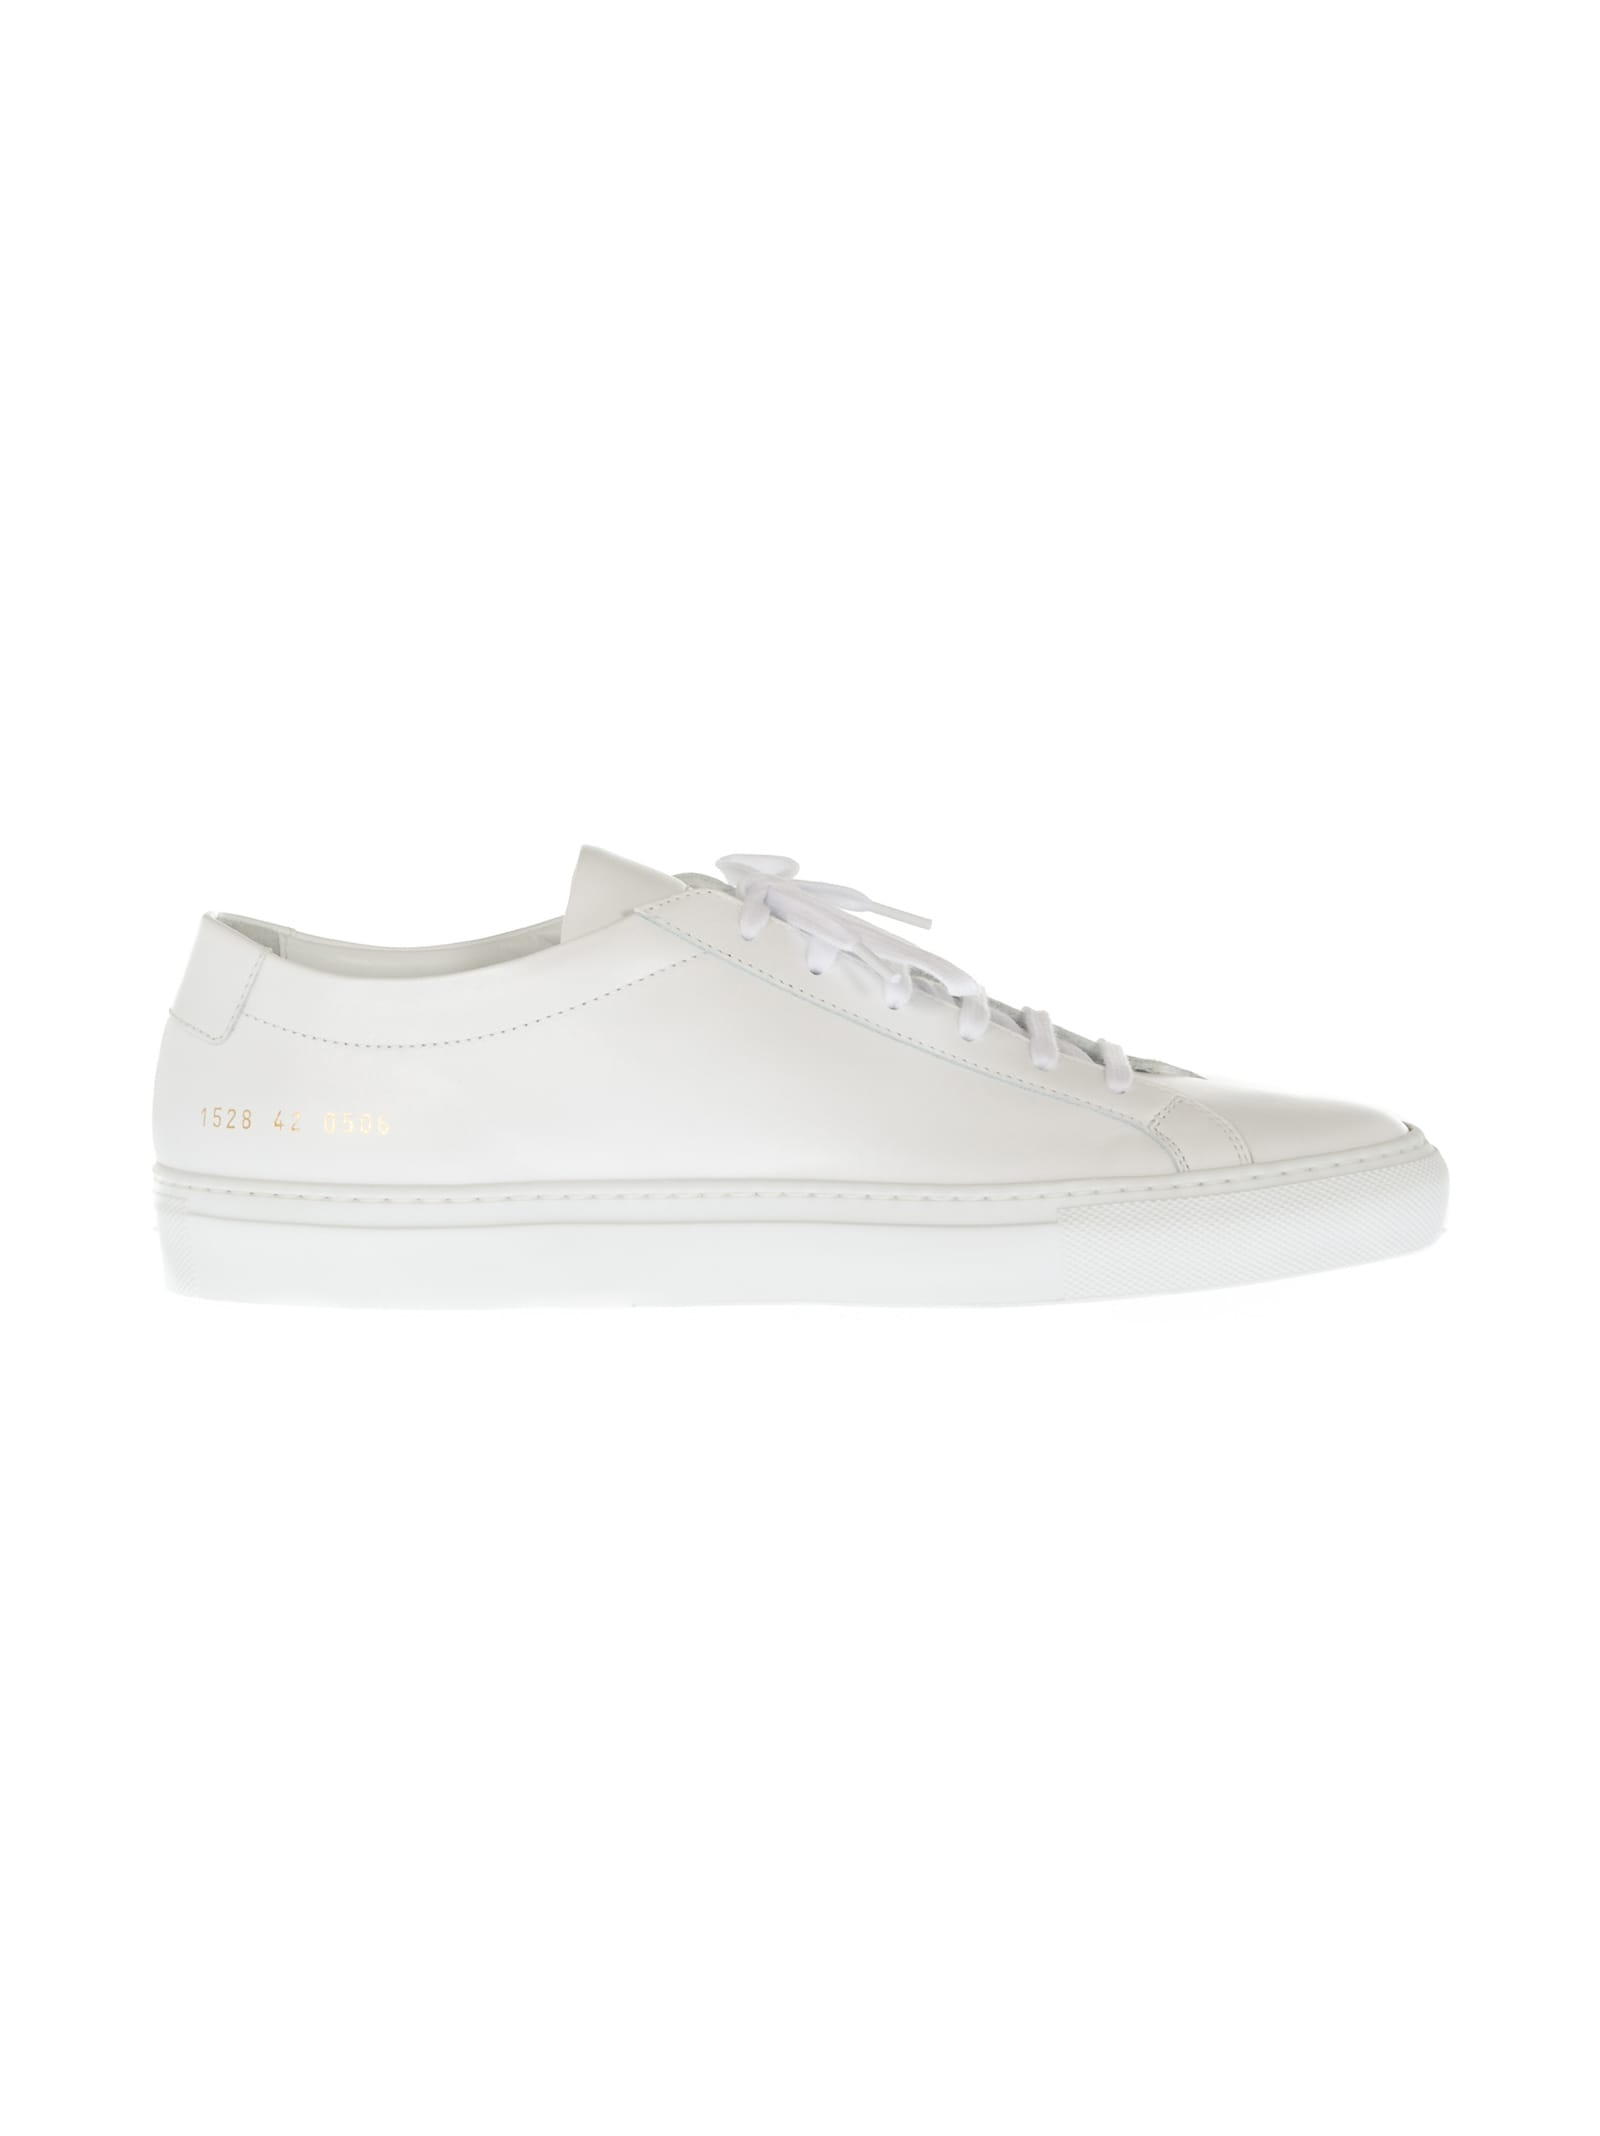 Common Projects Achilles Low-cut Sneakers